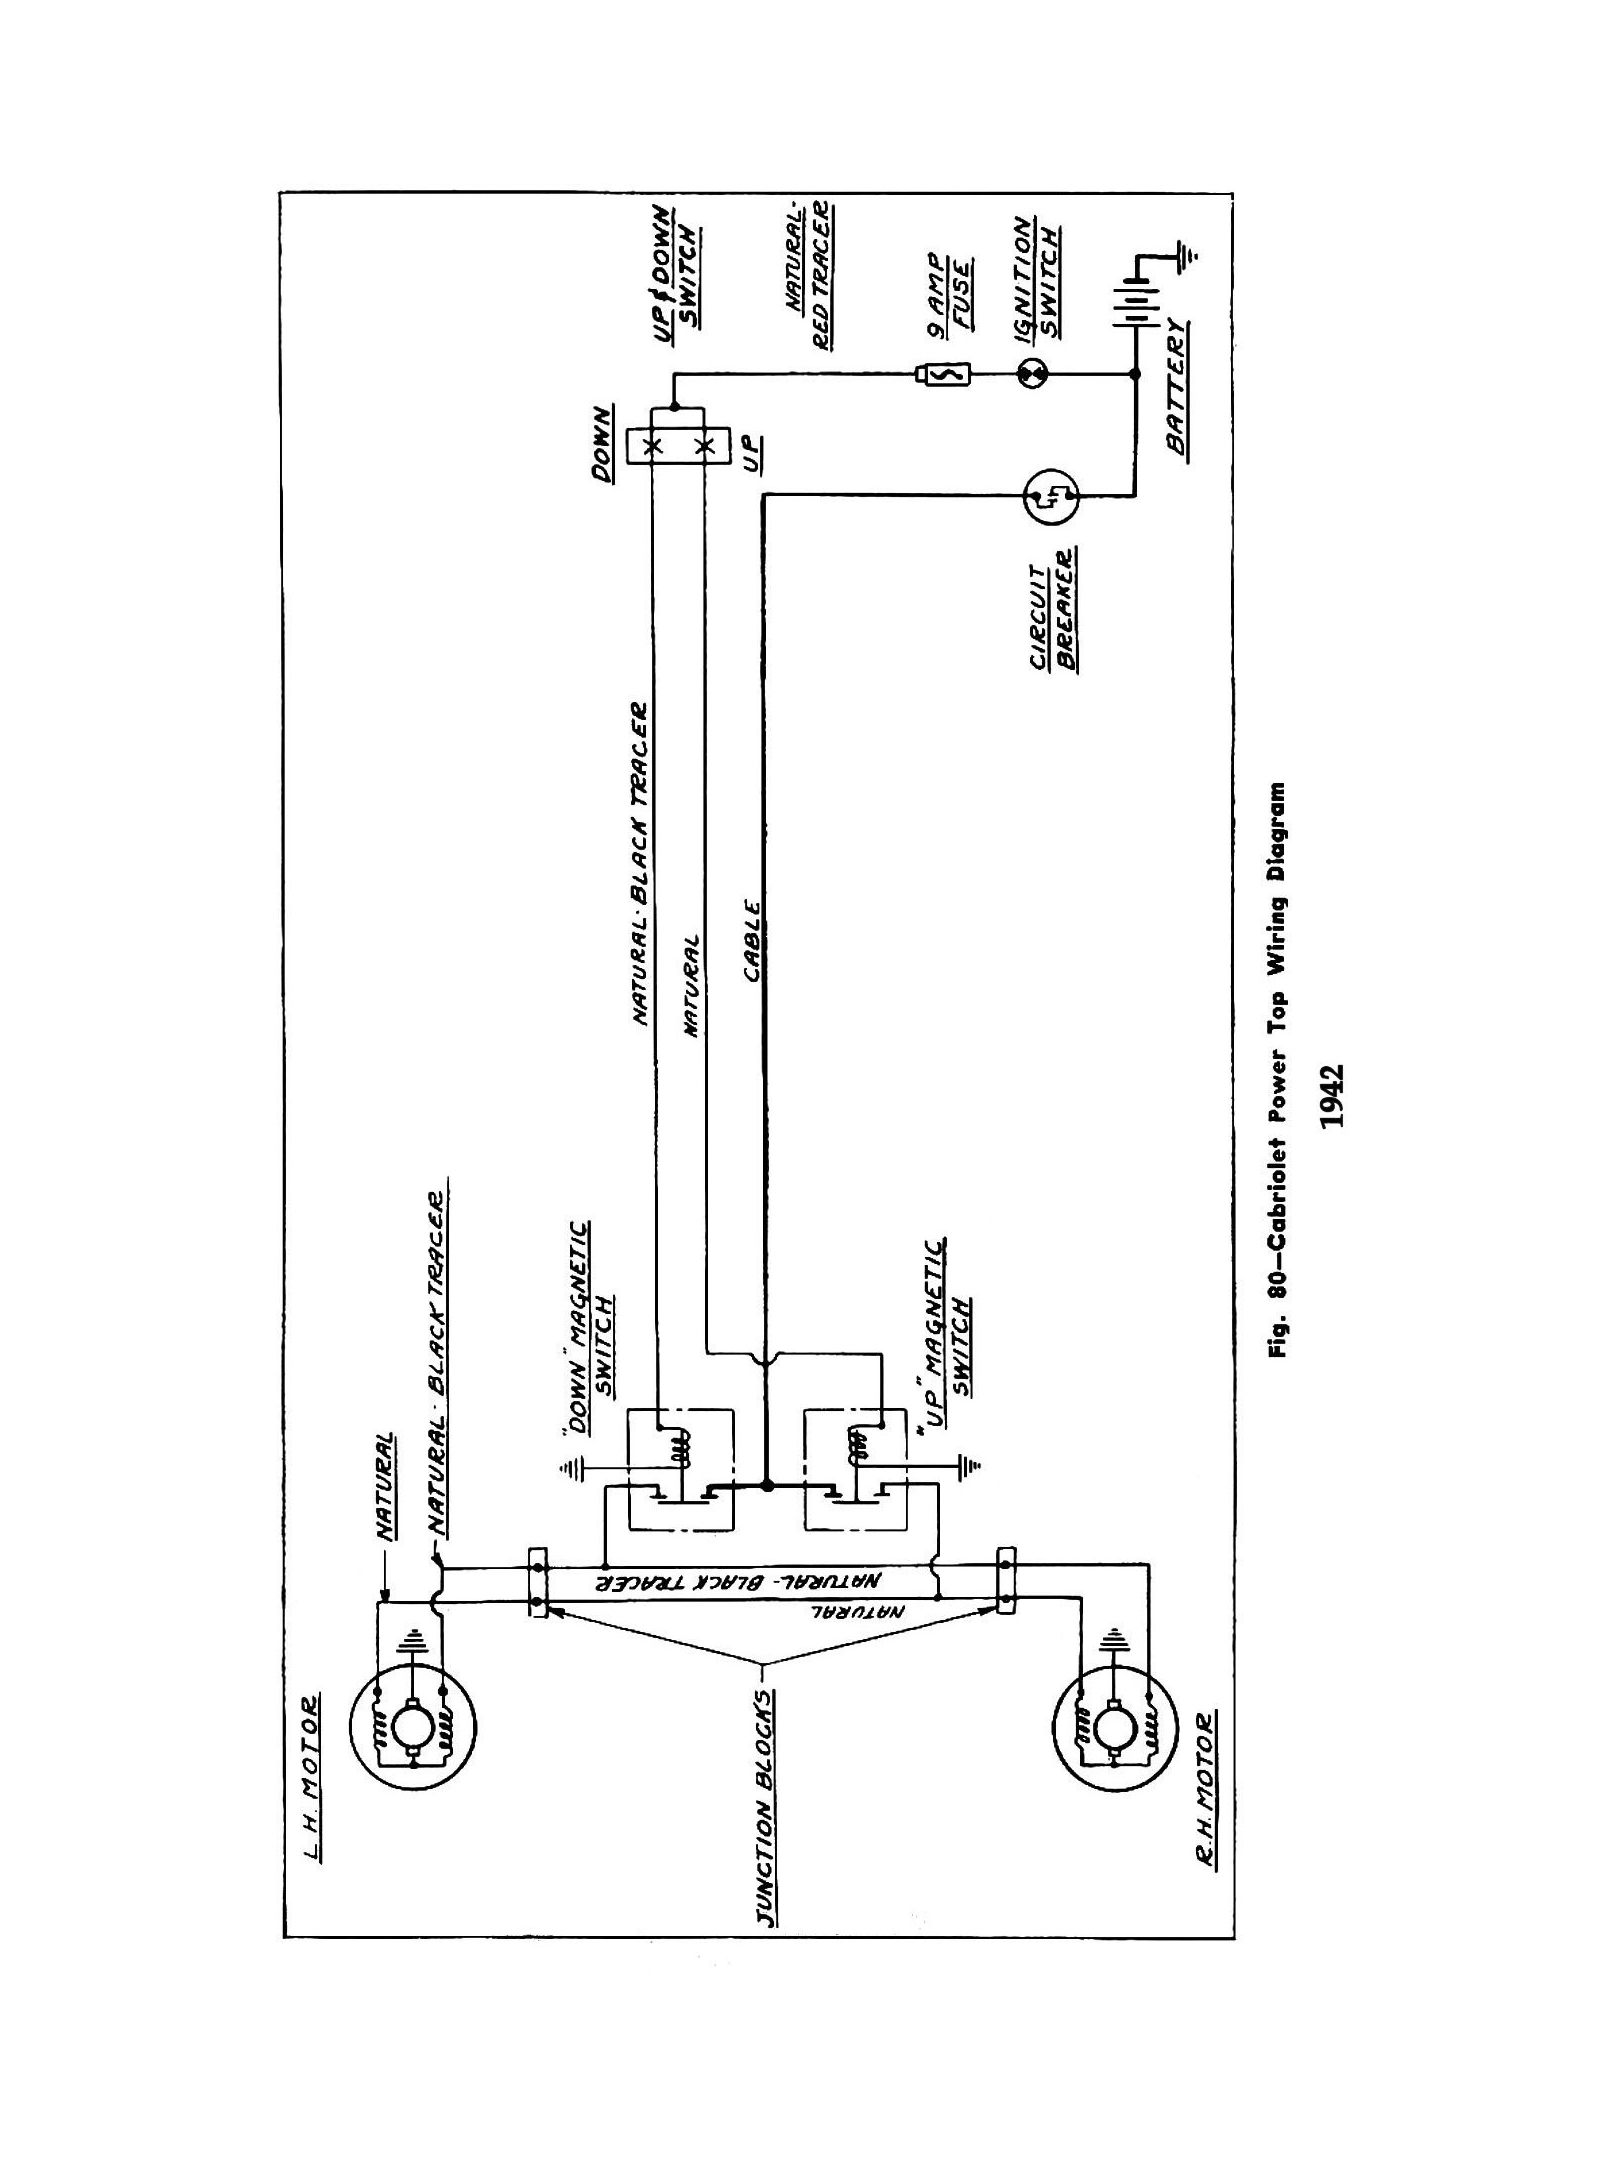 Chevy Wiring Diagrams Pontiac Diagram 1942 Truck Cabriolet Power Top